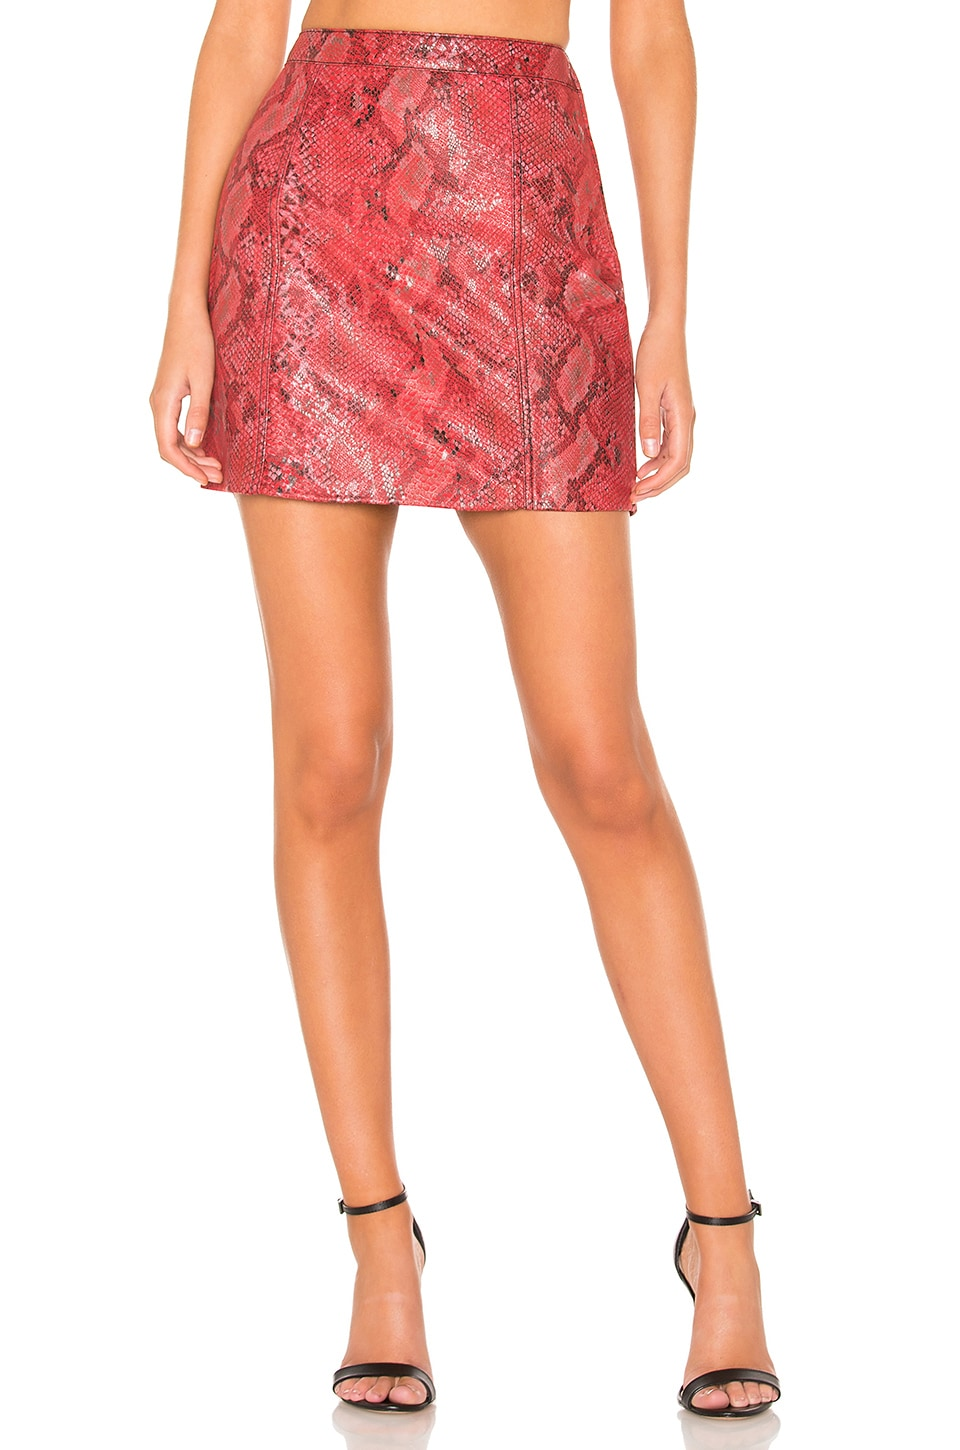 L'Academie The Serpent Leather Skirt in Snake